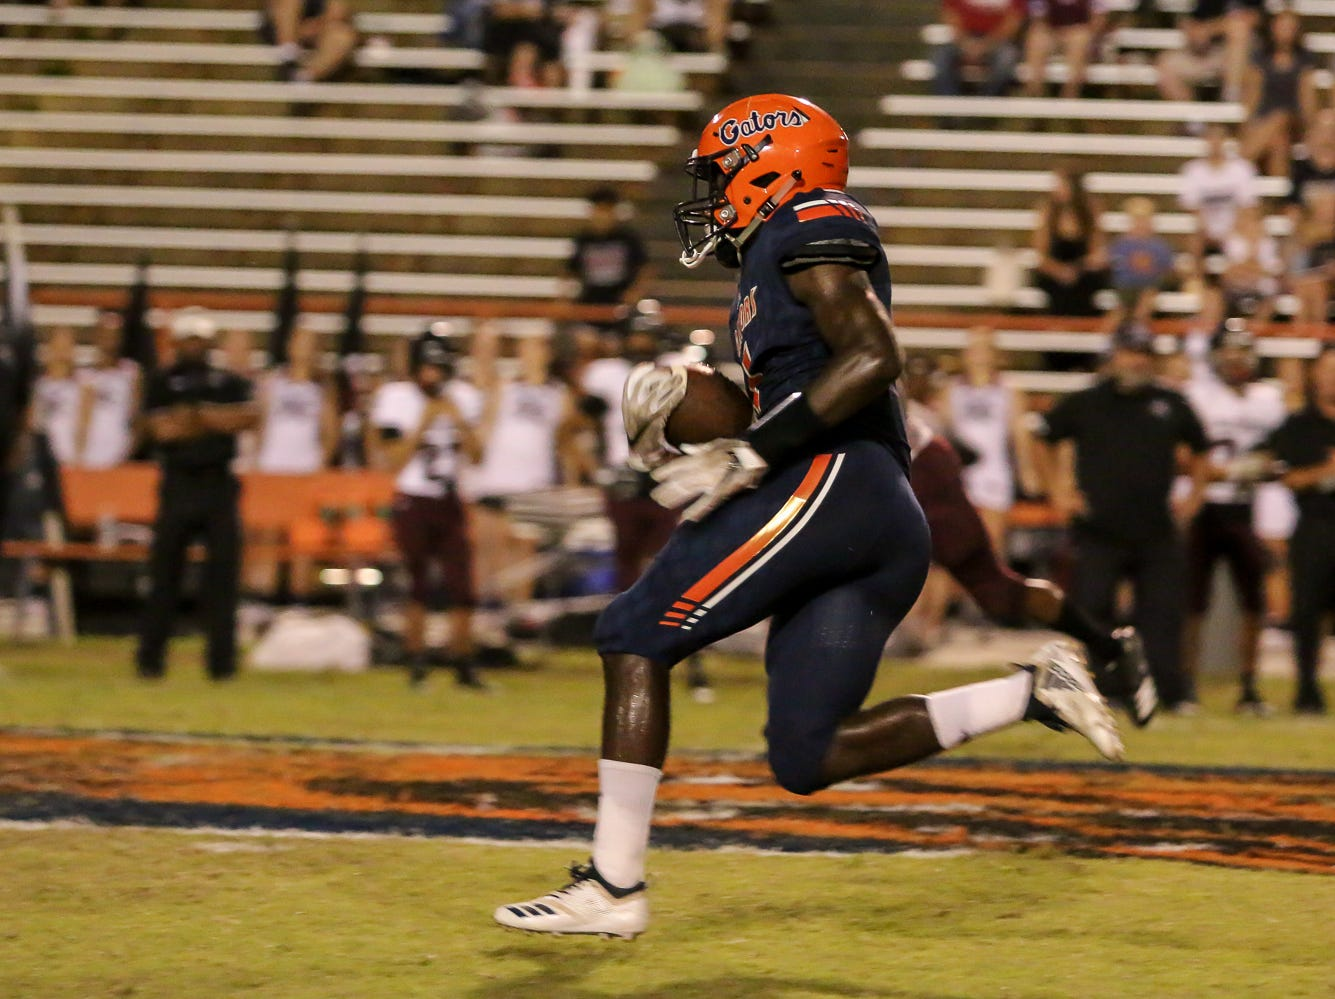 Escambia's Frank Peasant (1) races up the field for a touchdown against Navarre in the homecoming game at Escambia High School on Friday, October 5, 2018.